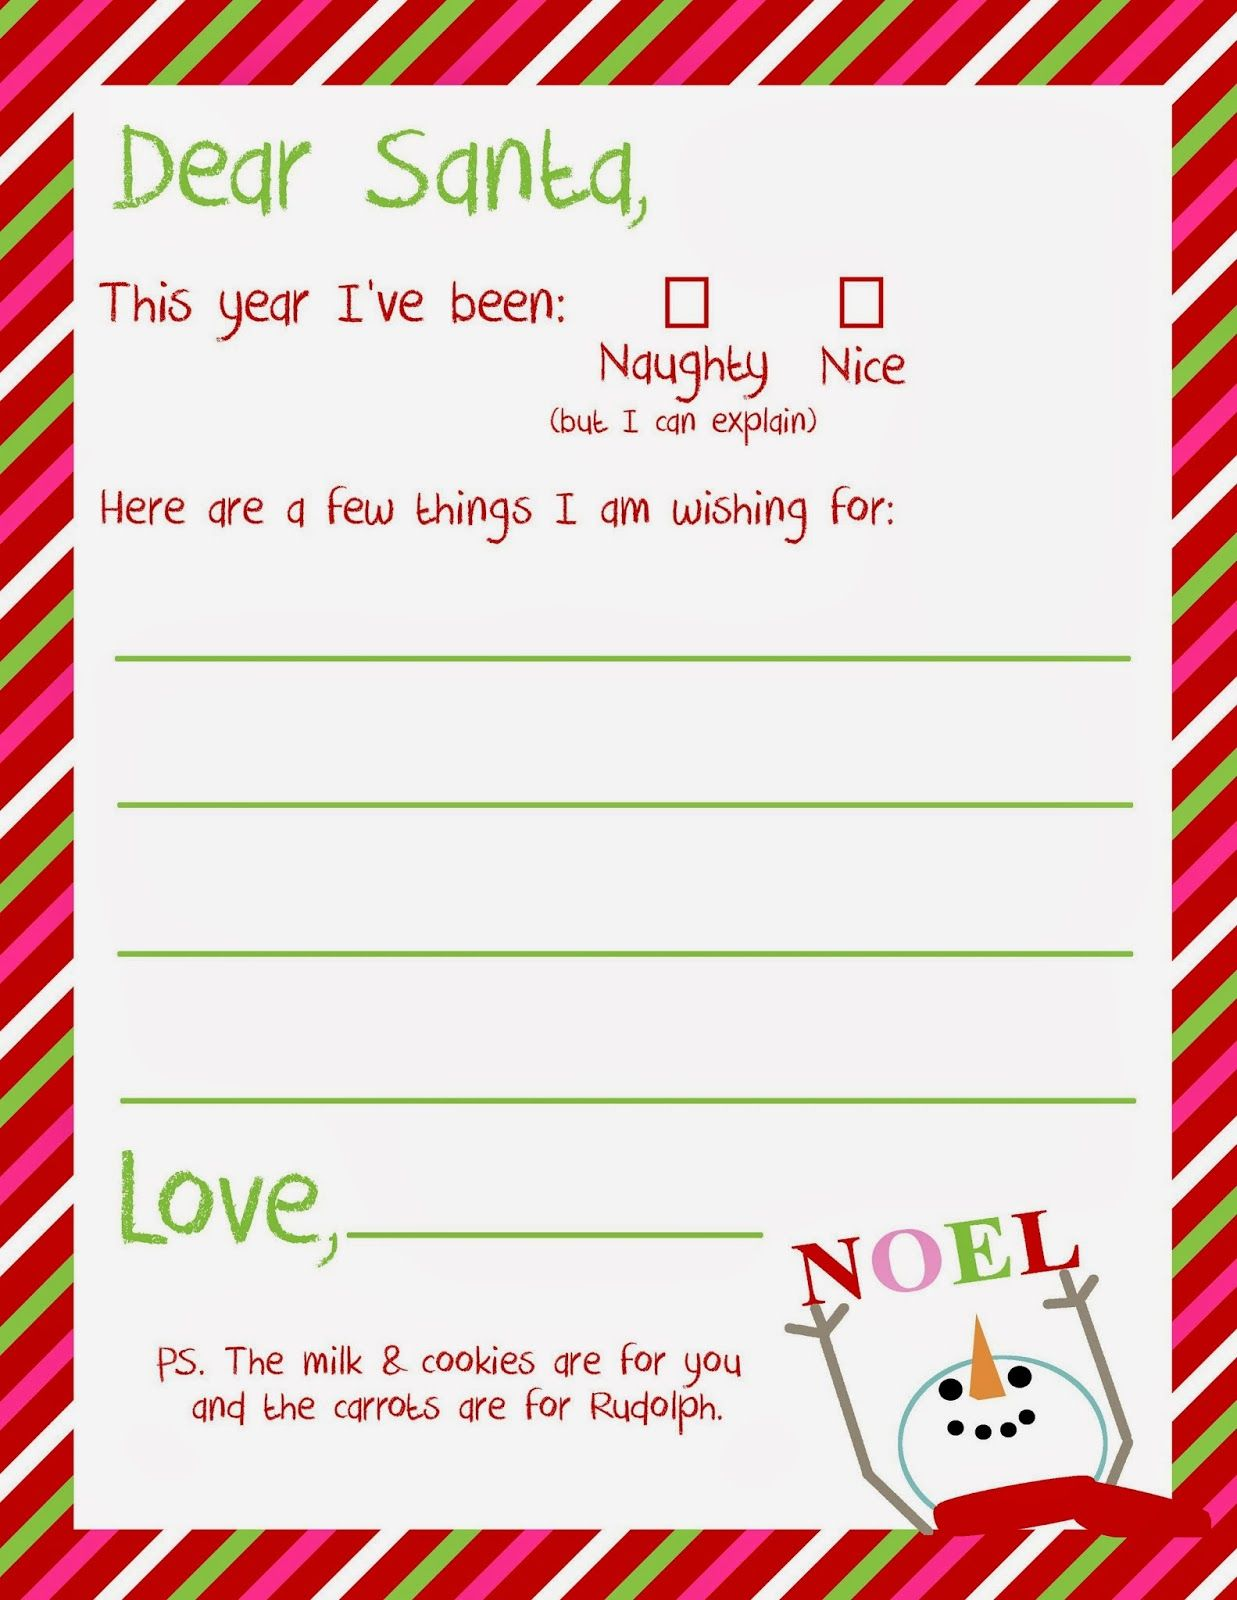 dear santa letter flickr photo dear santa letter printable santa letter santa letter 670